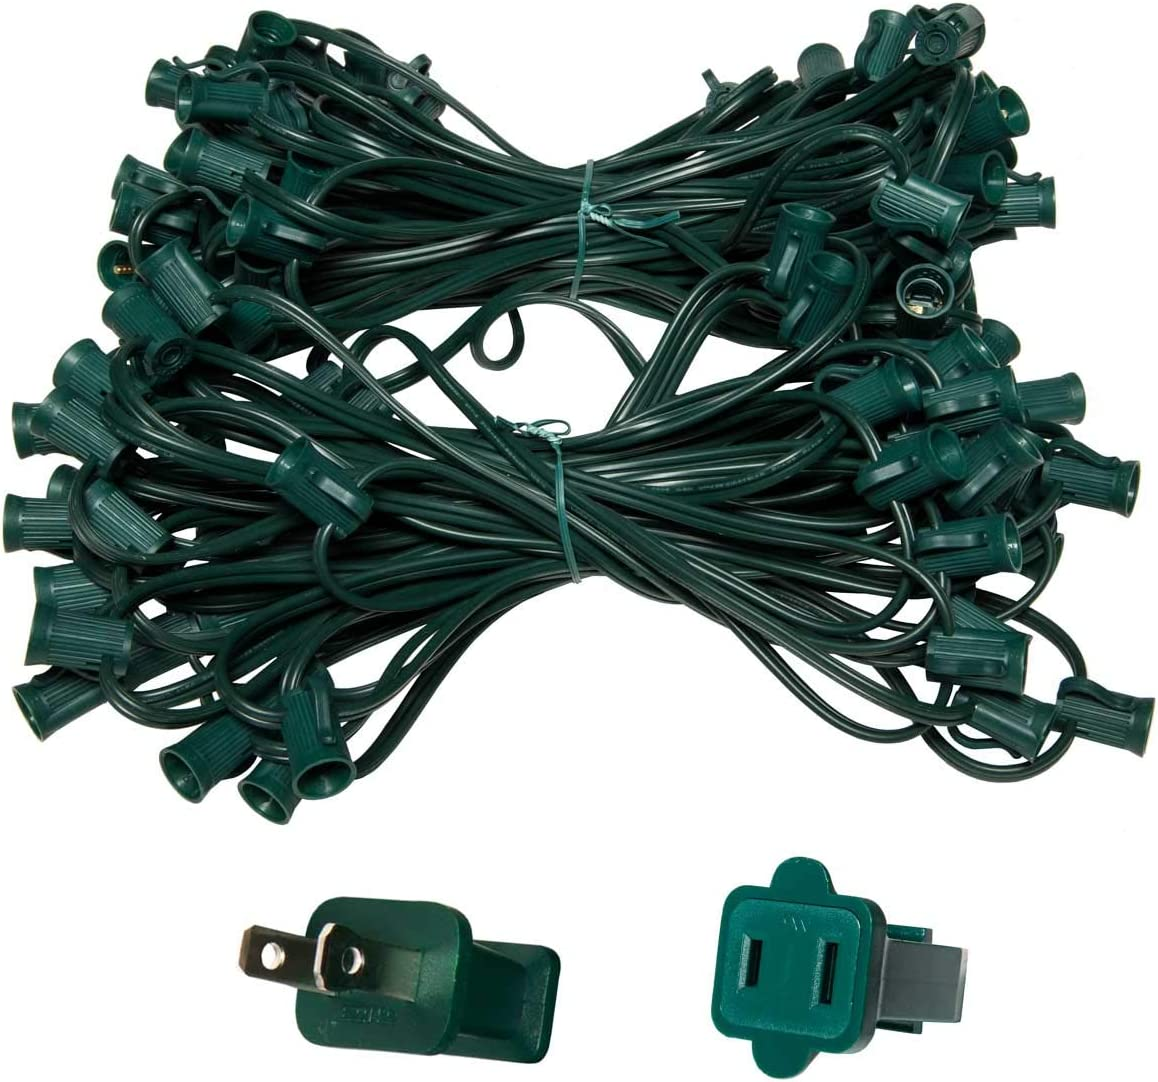 C7 E12 Light Stringer, E12 Sockets, 12 Socket Spacing, Outdoor String Light Patio Stringer Christmas Lights Stringer, Fits C7 Size Incandescent or LED Bulbs 100 ft 100 Sockets, Green Wire